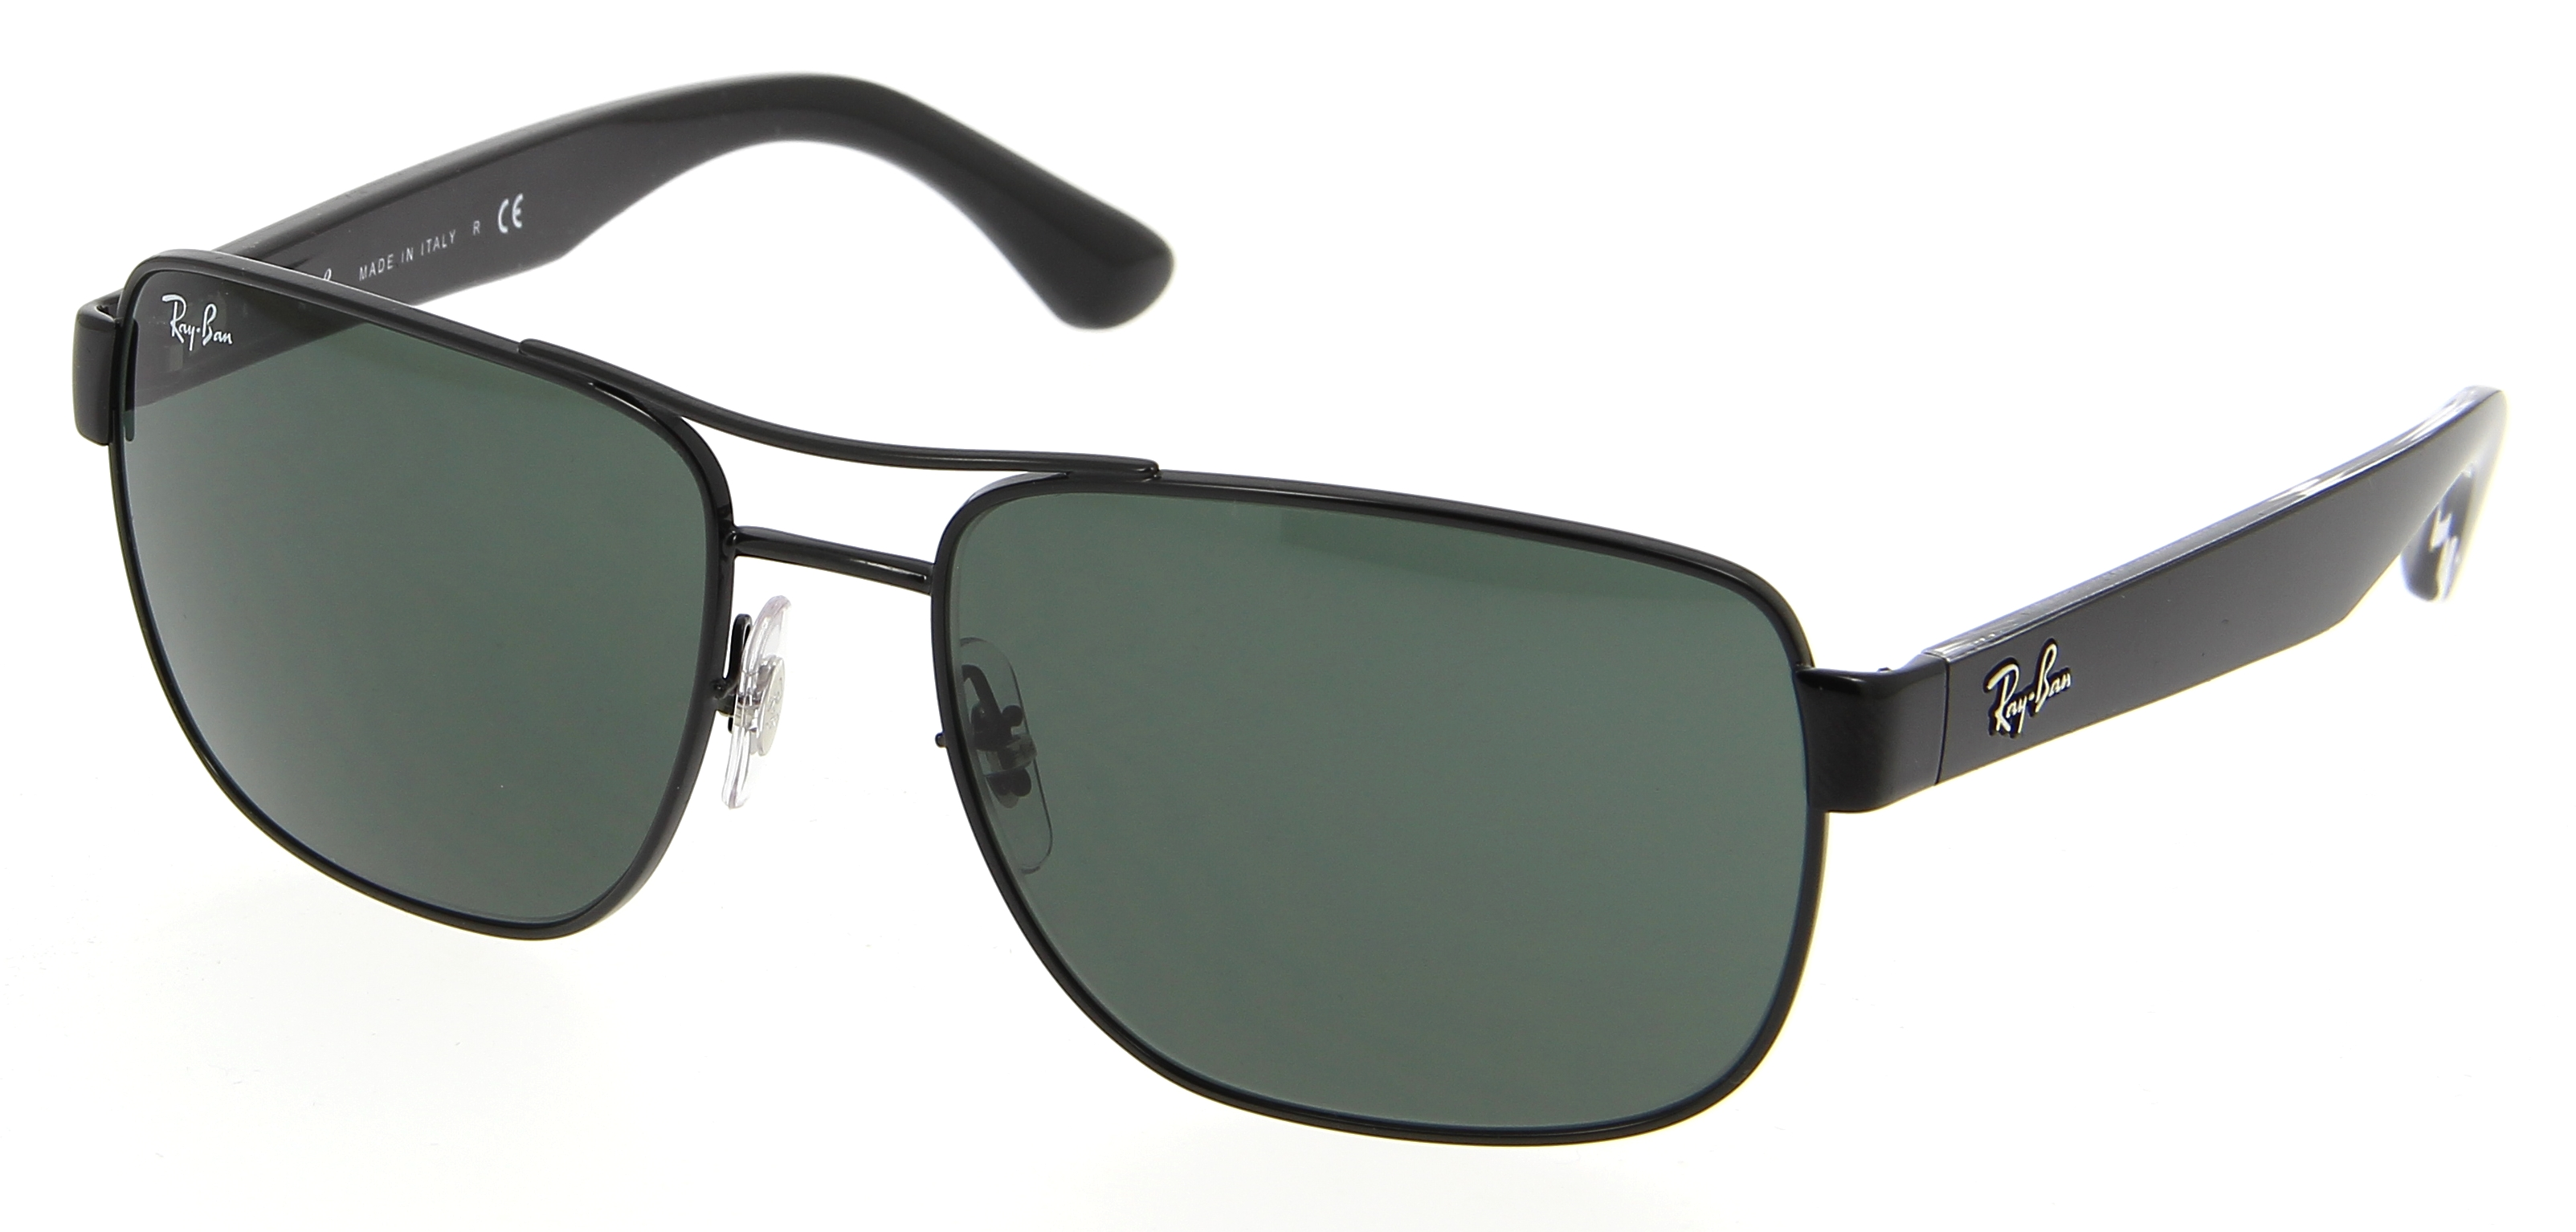 Lunettes De Soleil Ray Ban Homme Optical Center - Psychopraticienne Bordeaux 213e19ee99a3